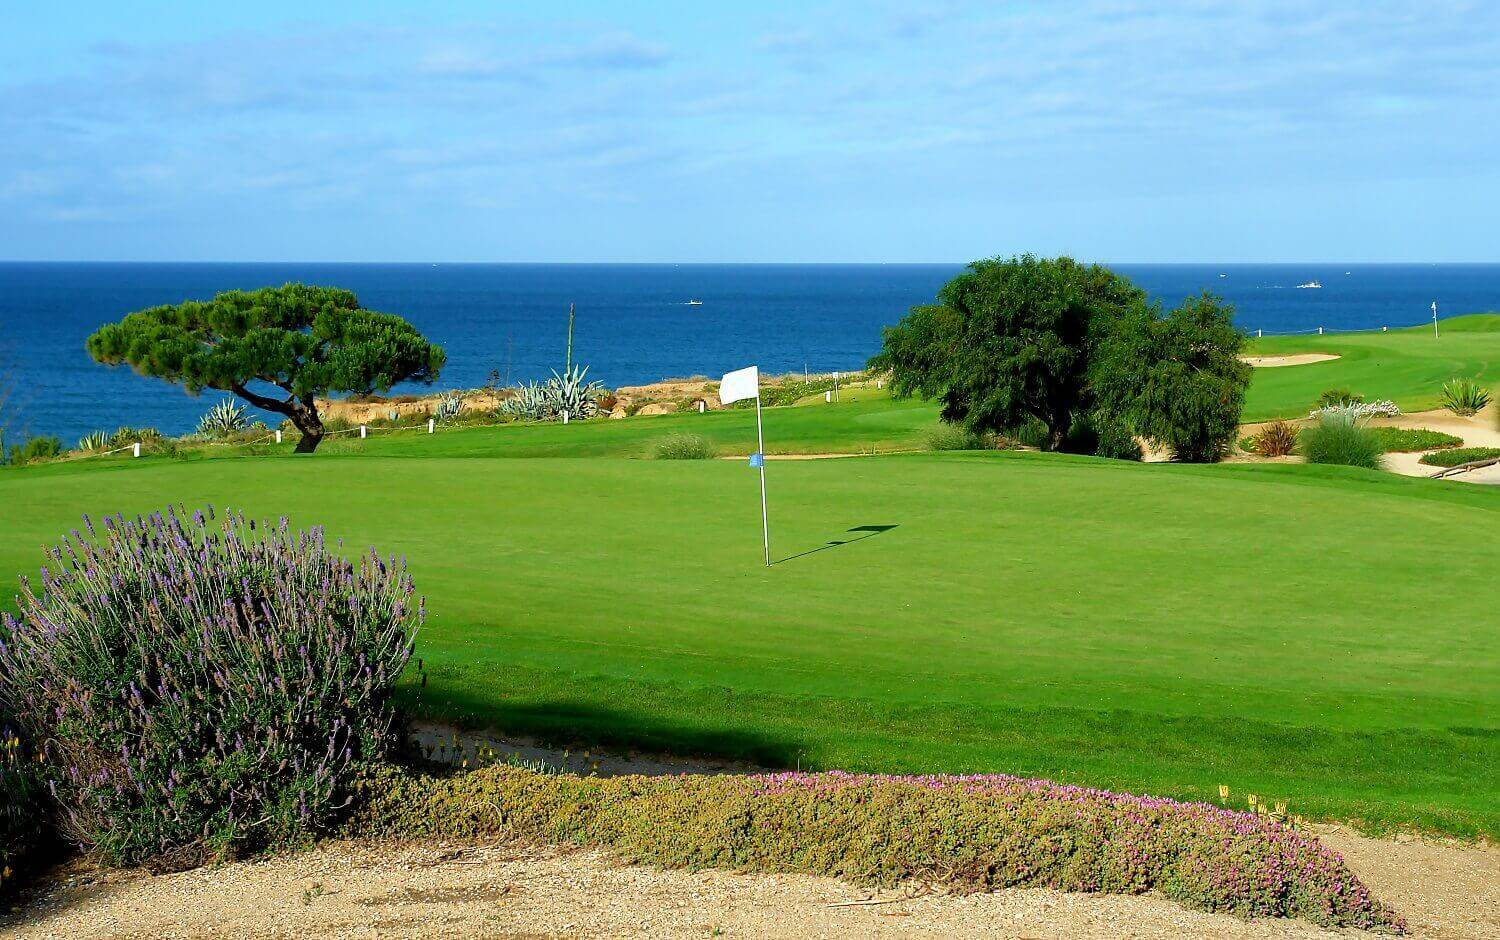 Golf course in Portugal